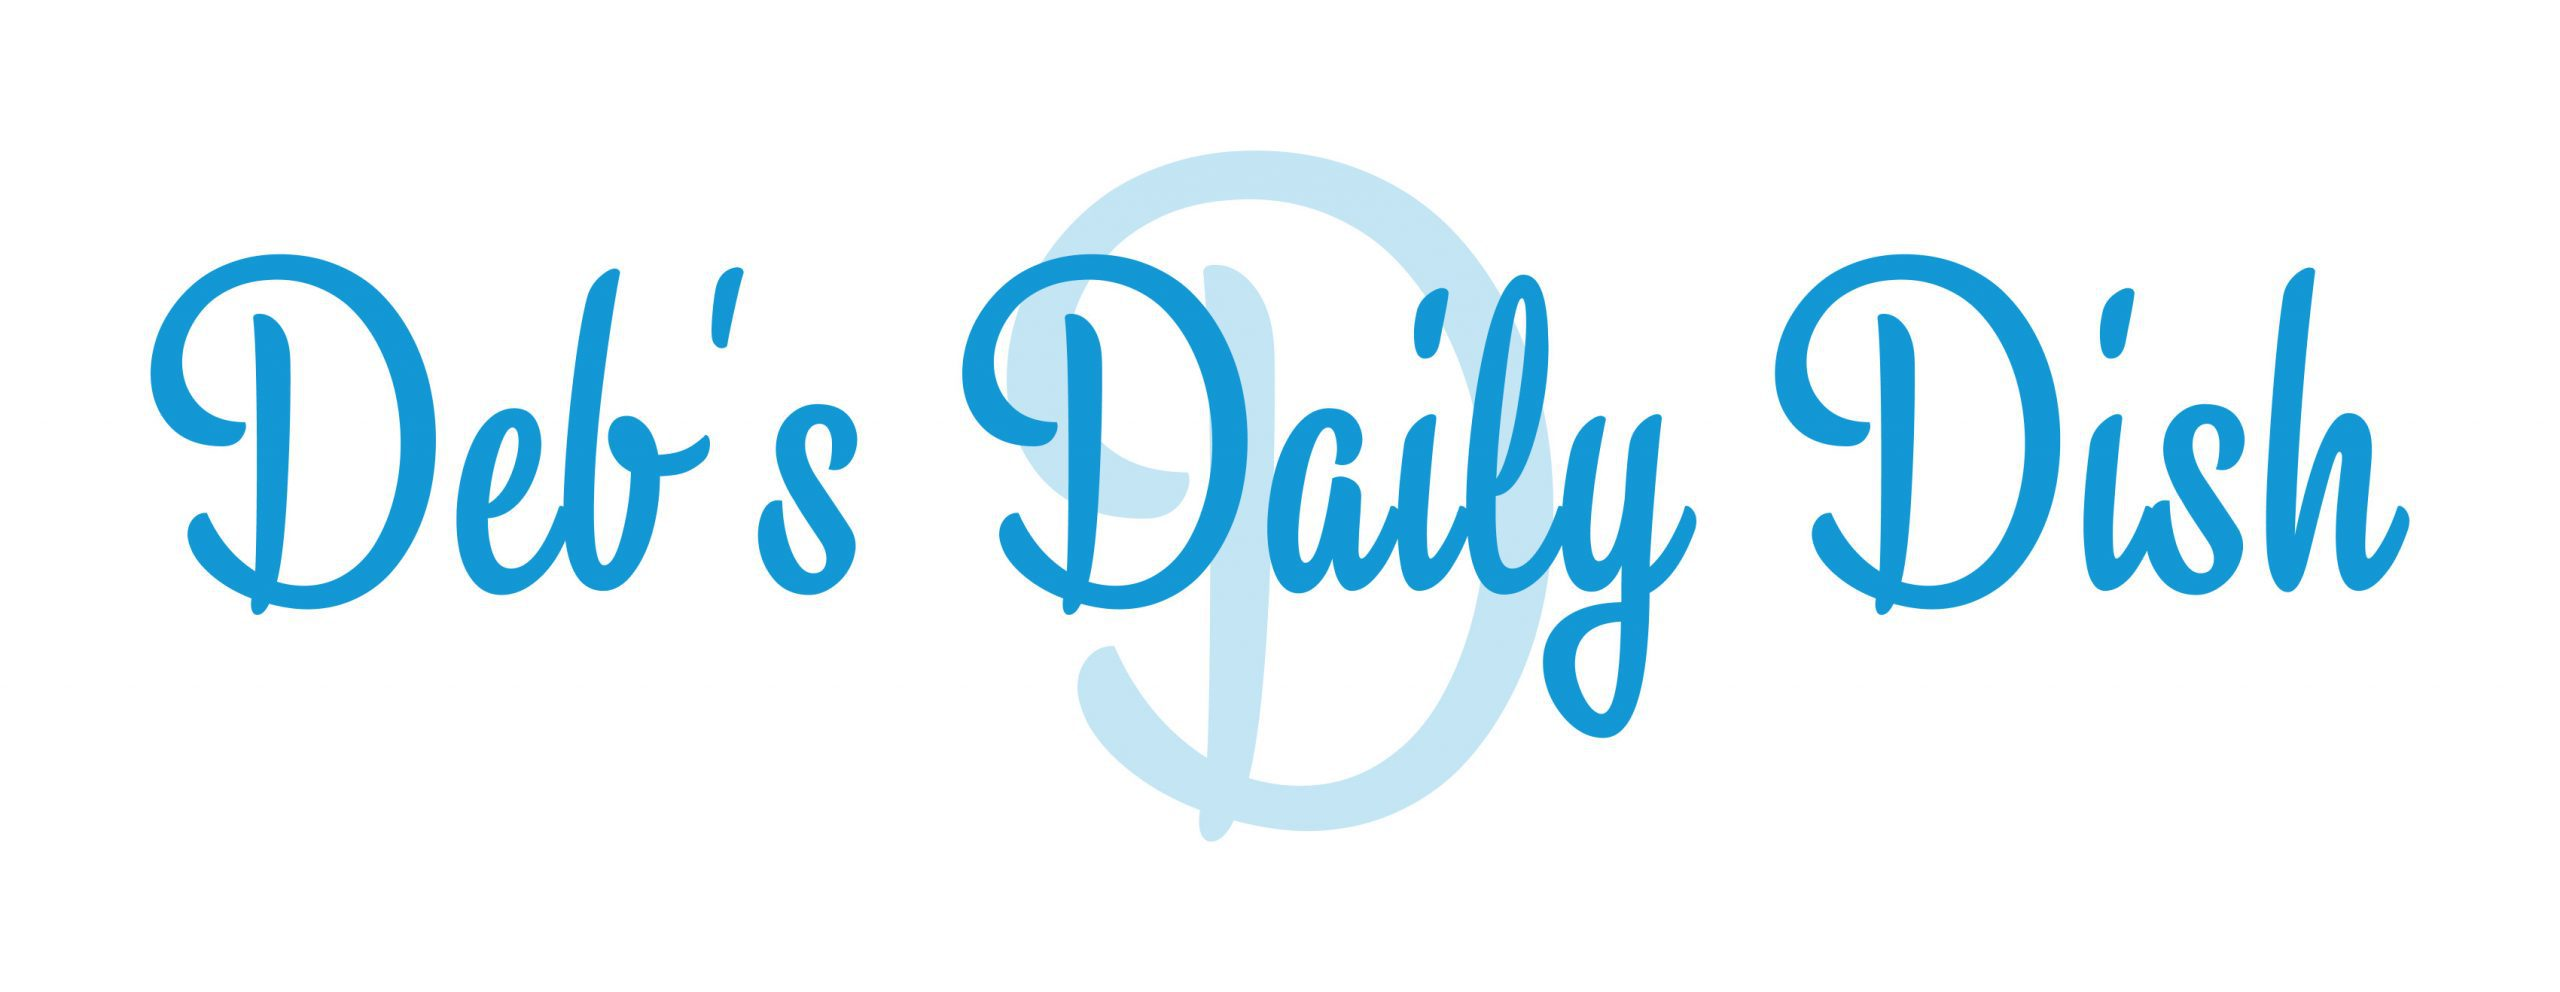 Deb's Daily Dish - Serving healthy, low carb and keto recipes logo